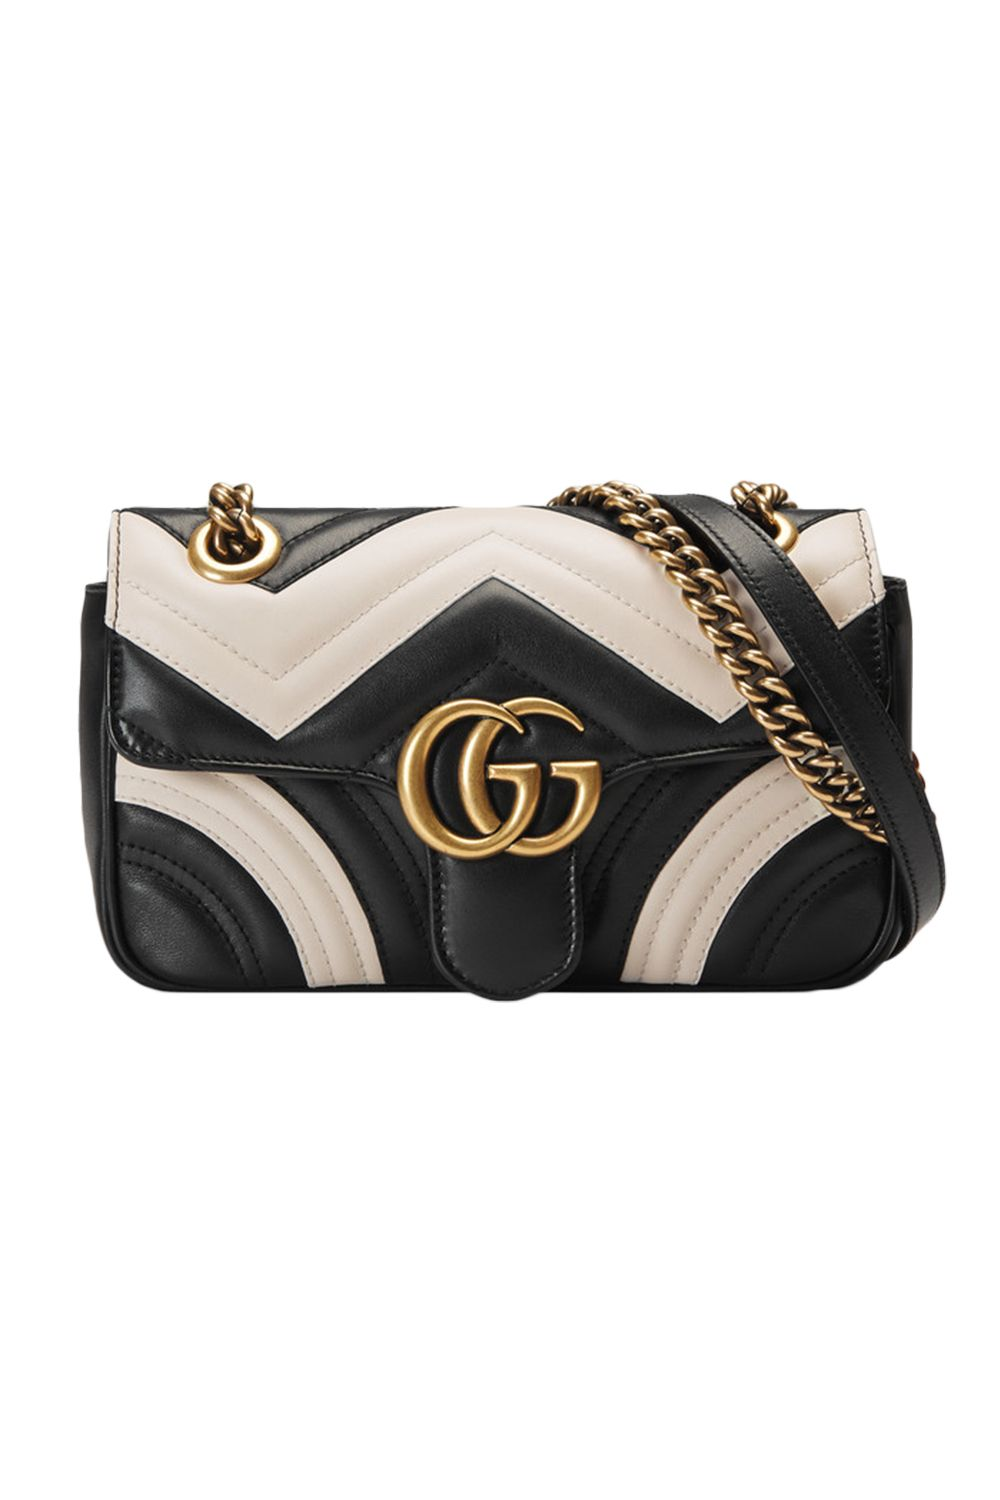 Arm Candy: 10 Evening Bags to Obsess Over Now